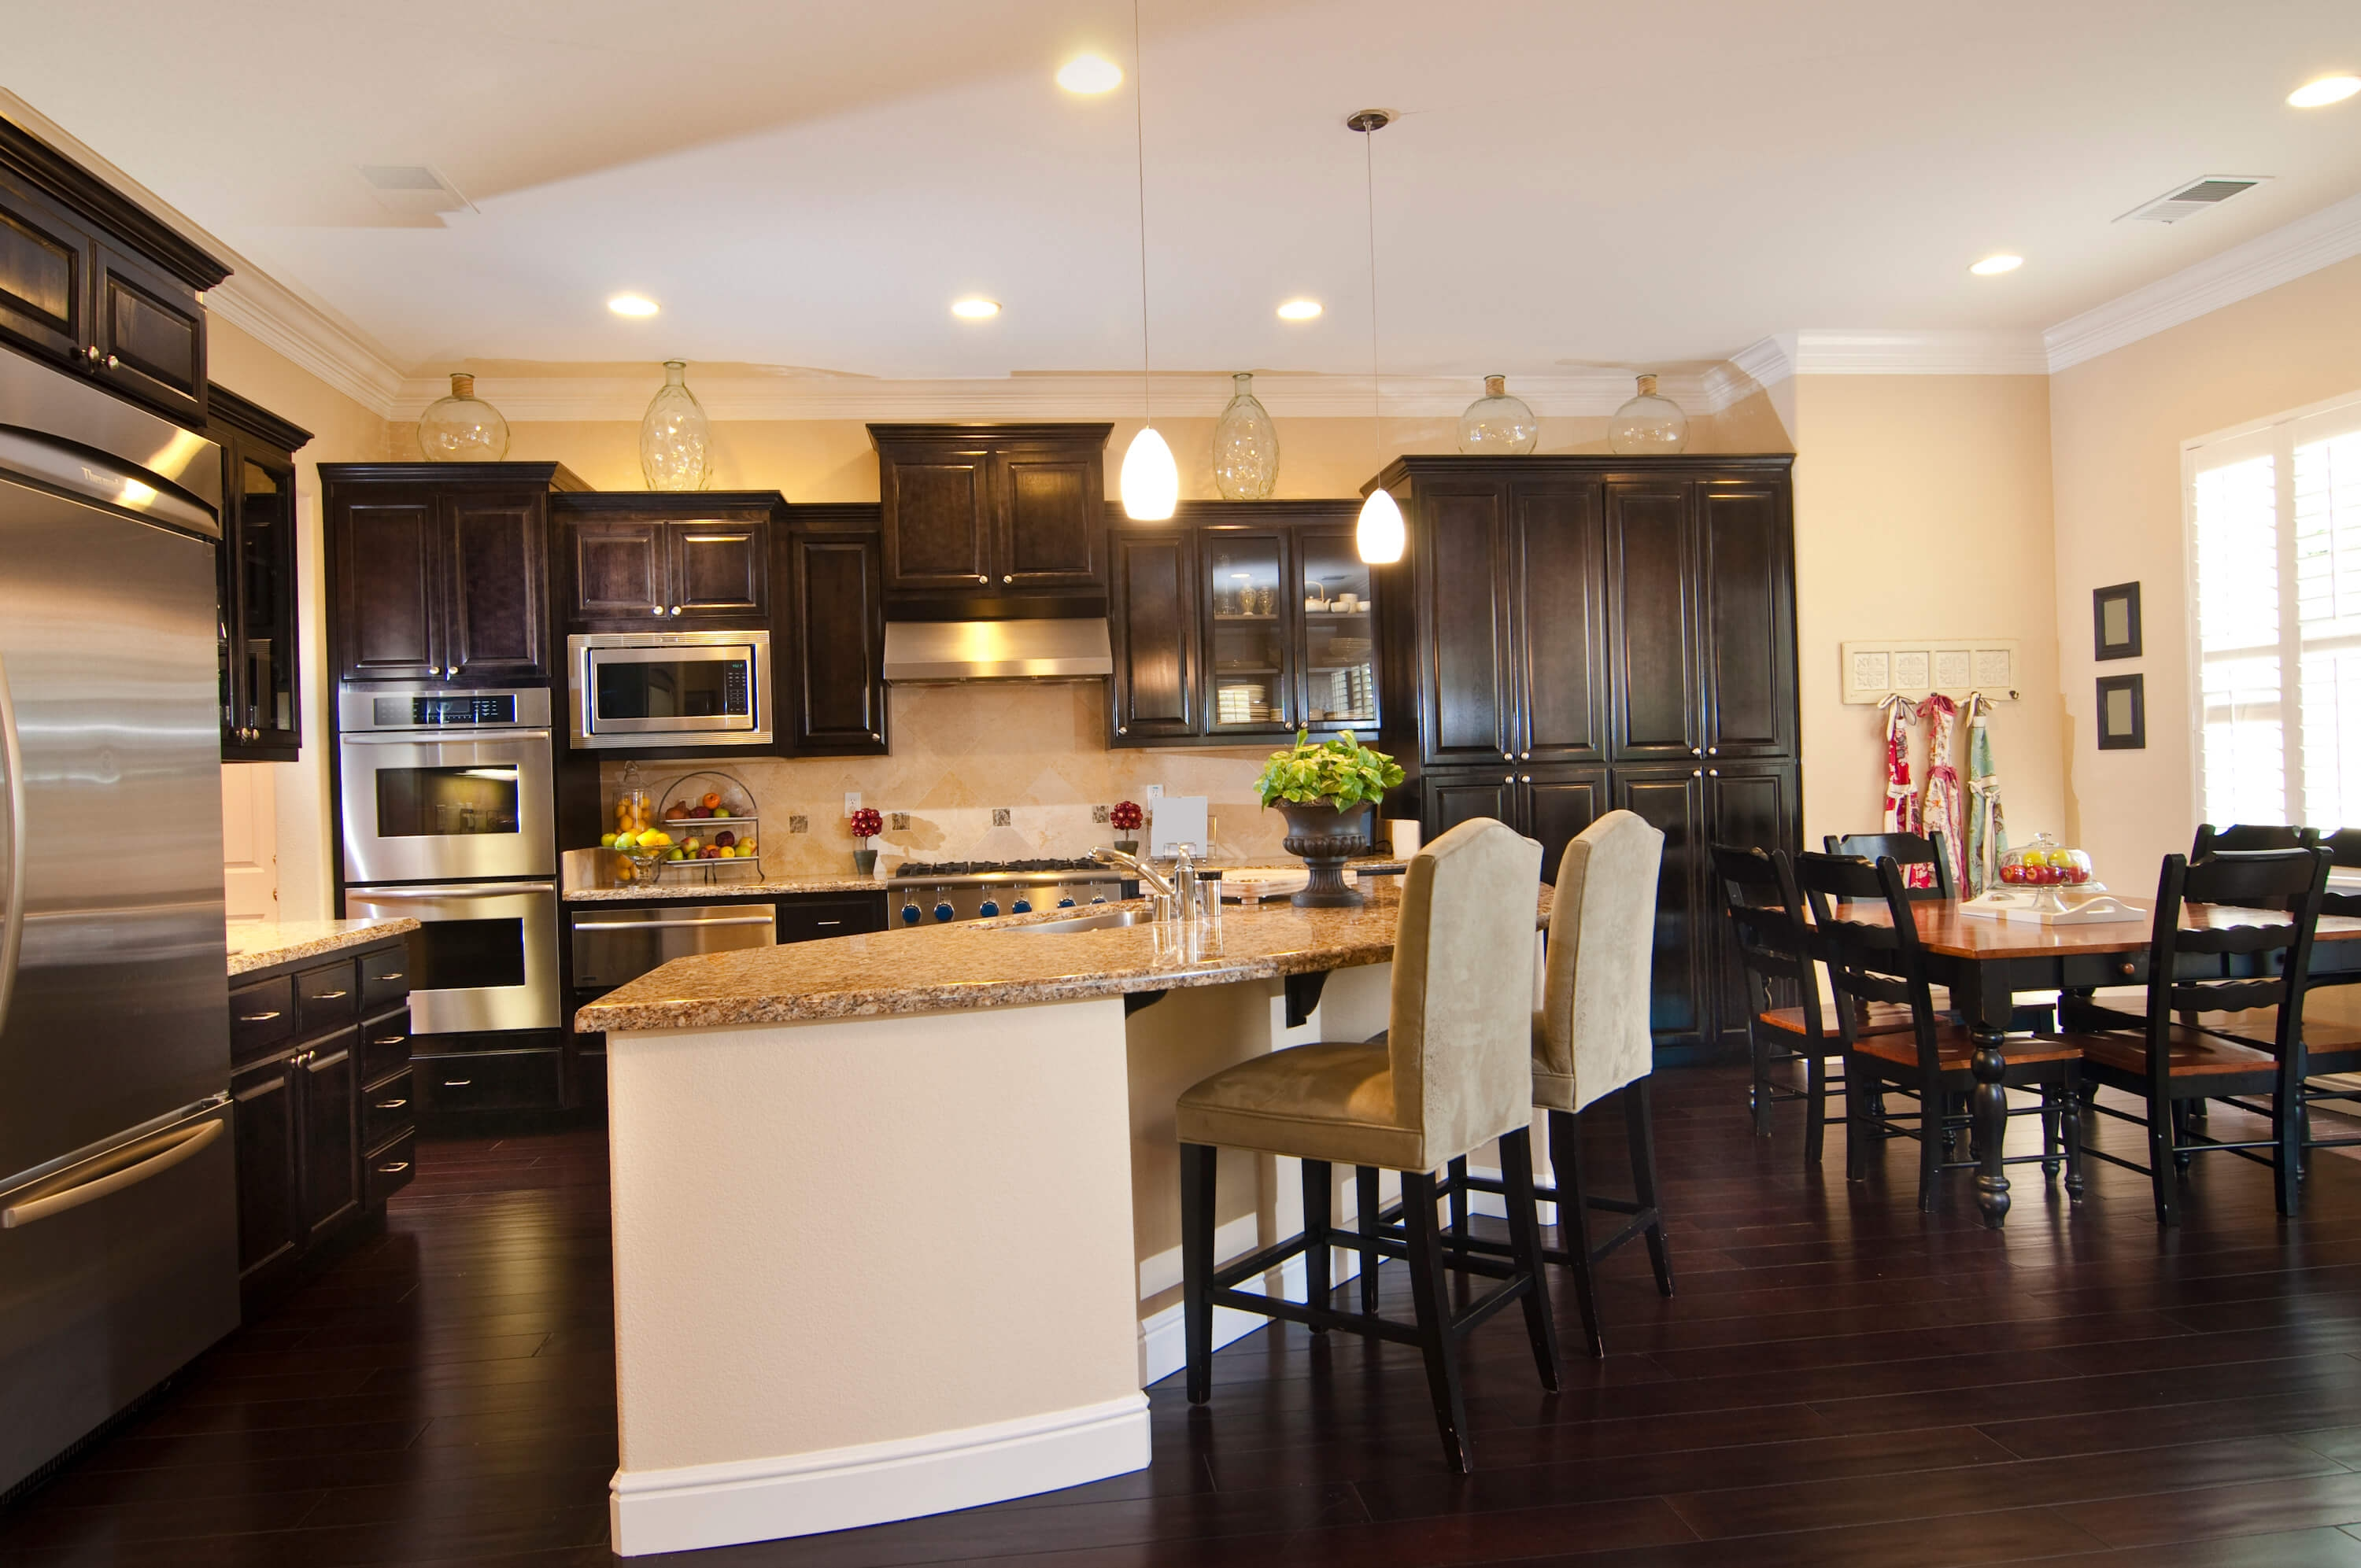 Permalink to Best Kitchen Cabinet Color For Dark Wood Floors